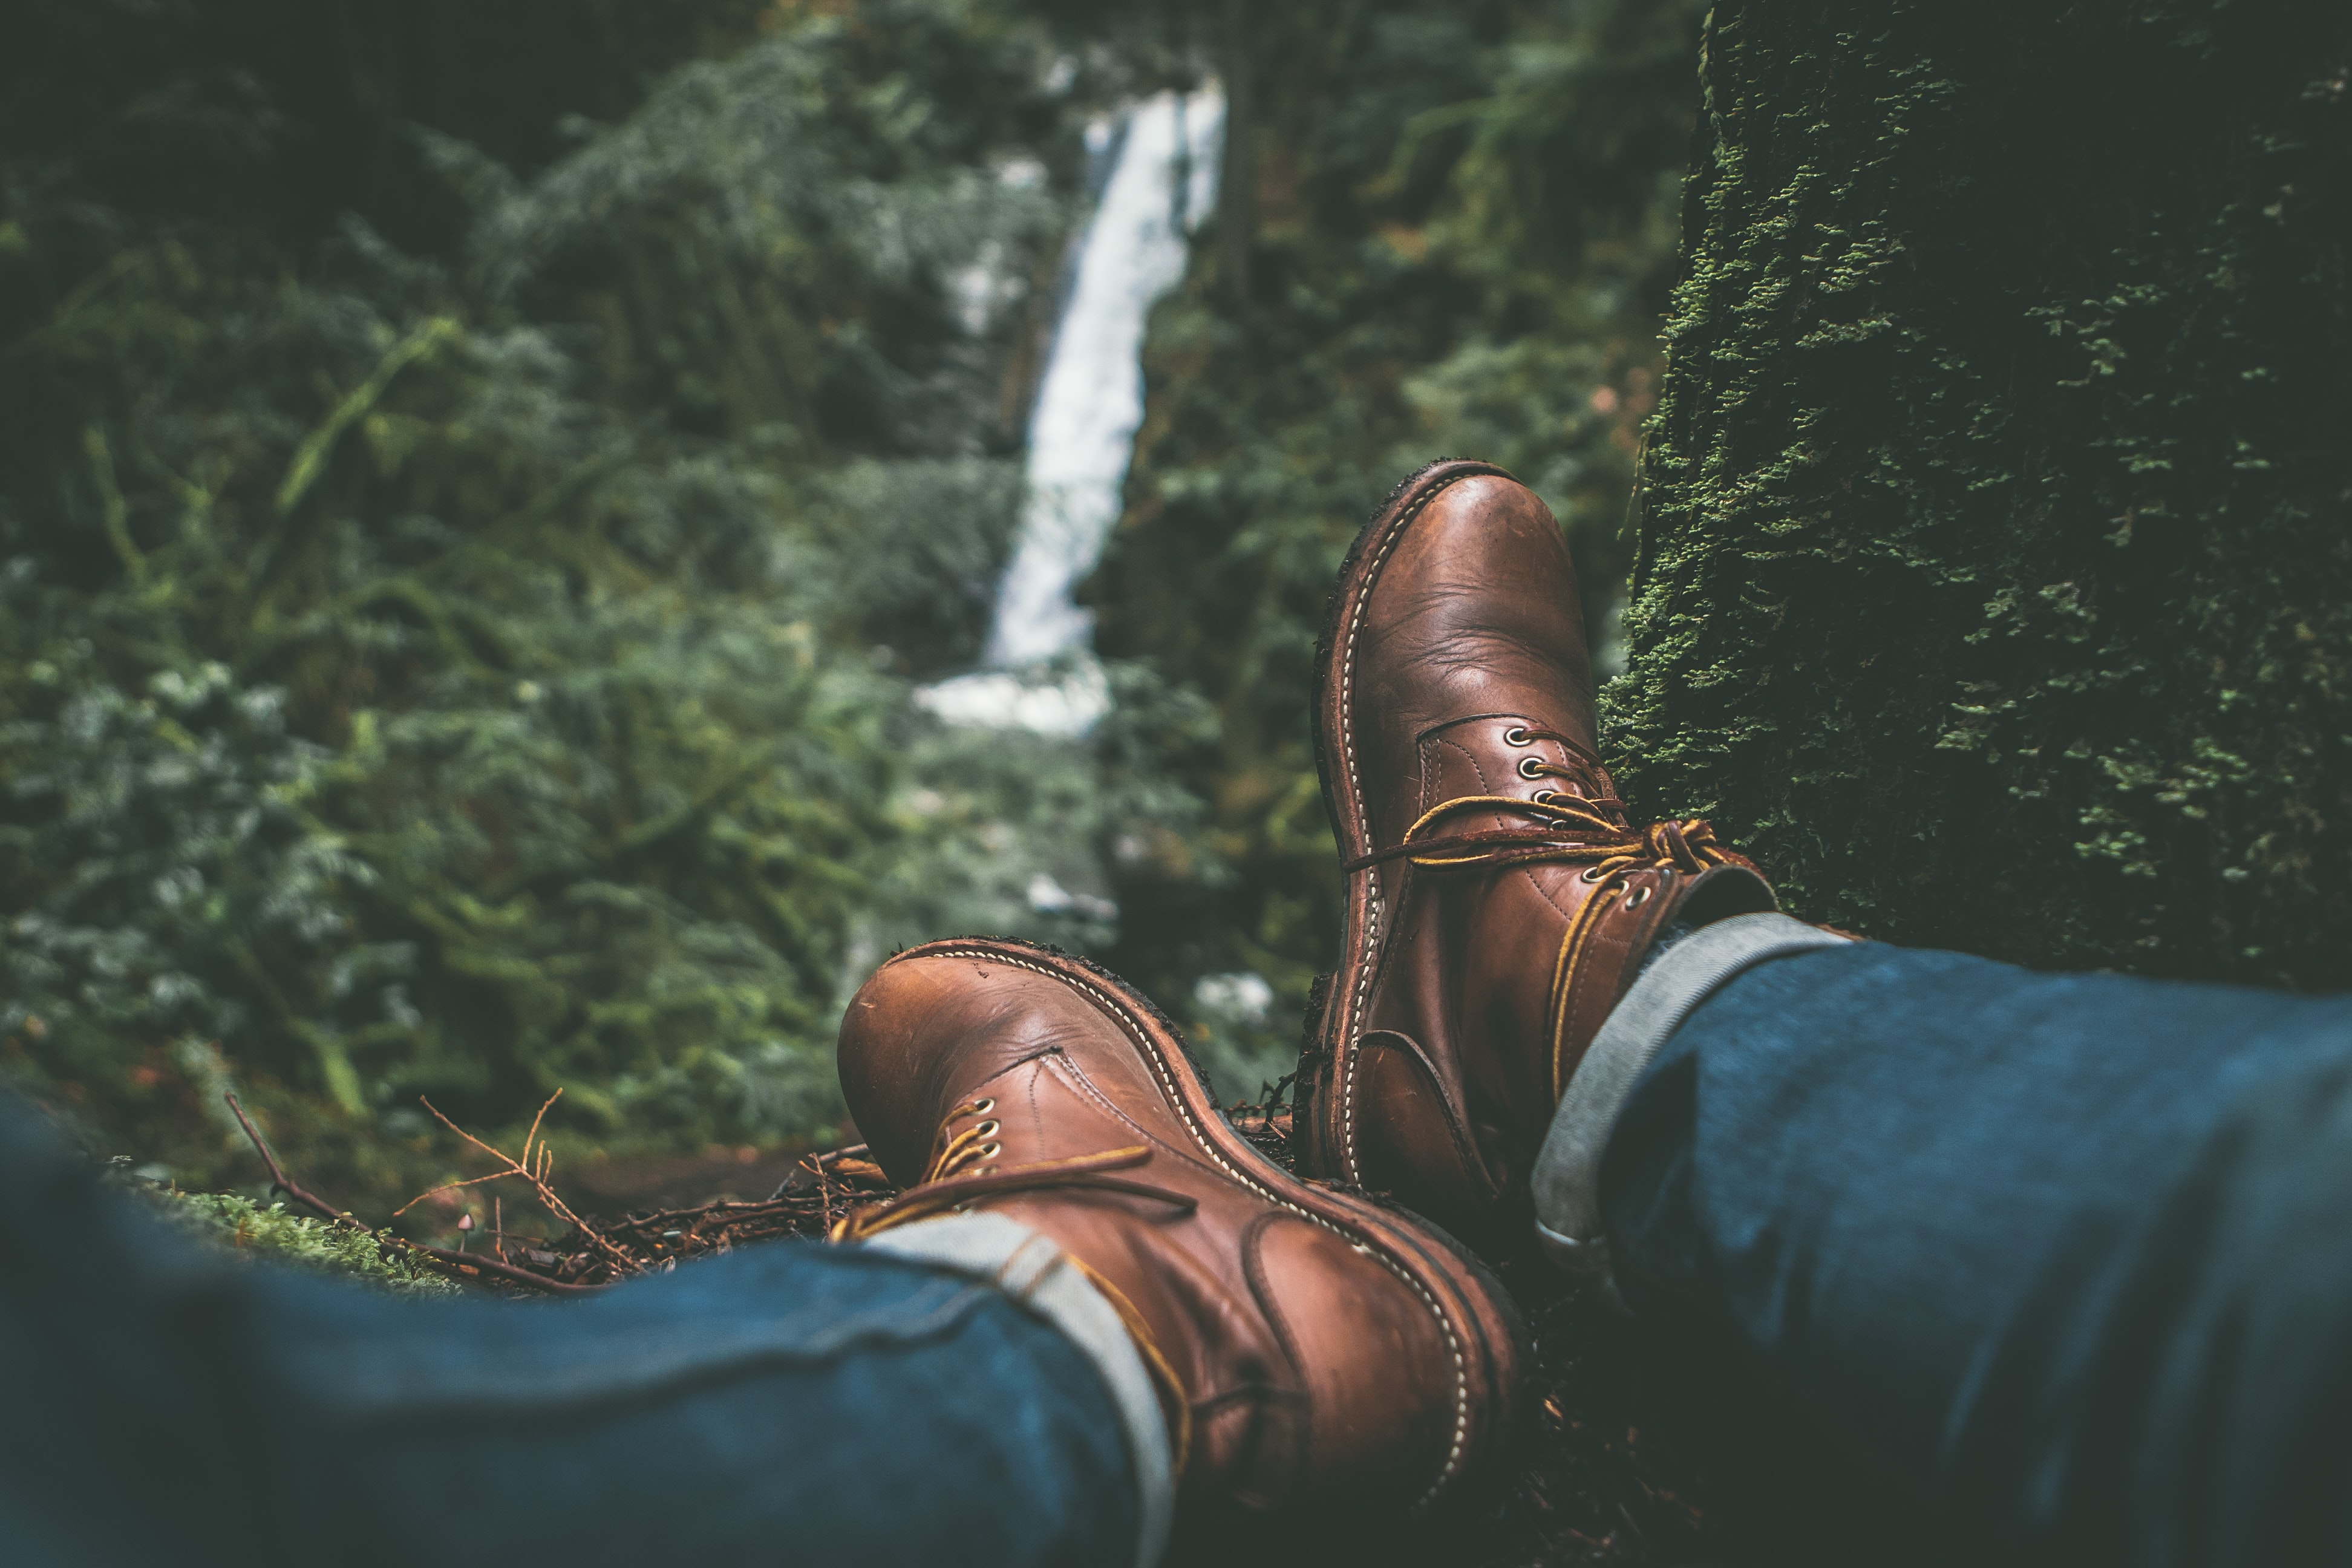 person wearing brown leather boots near green leafed plants